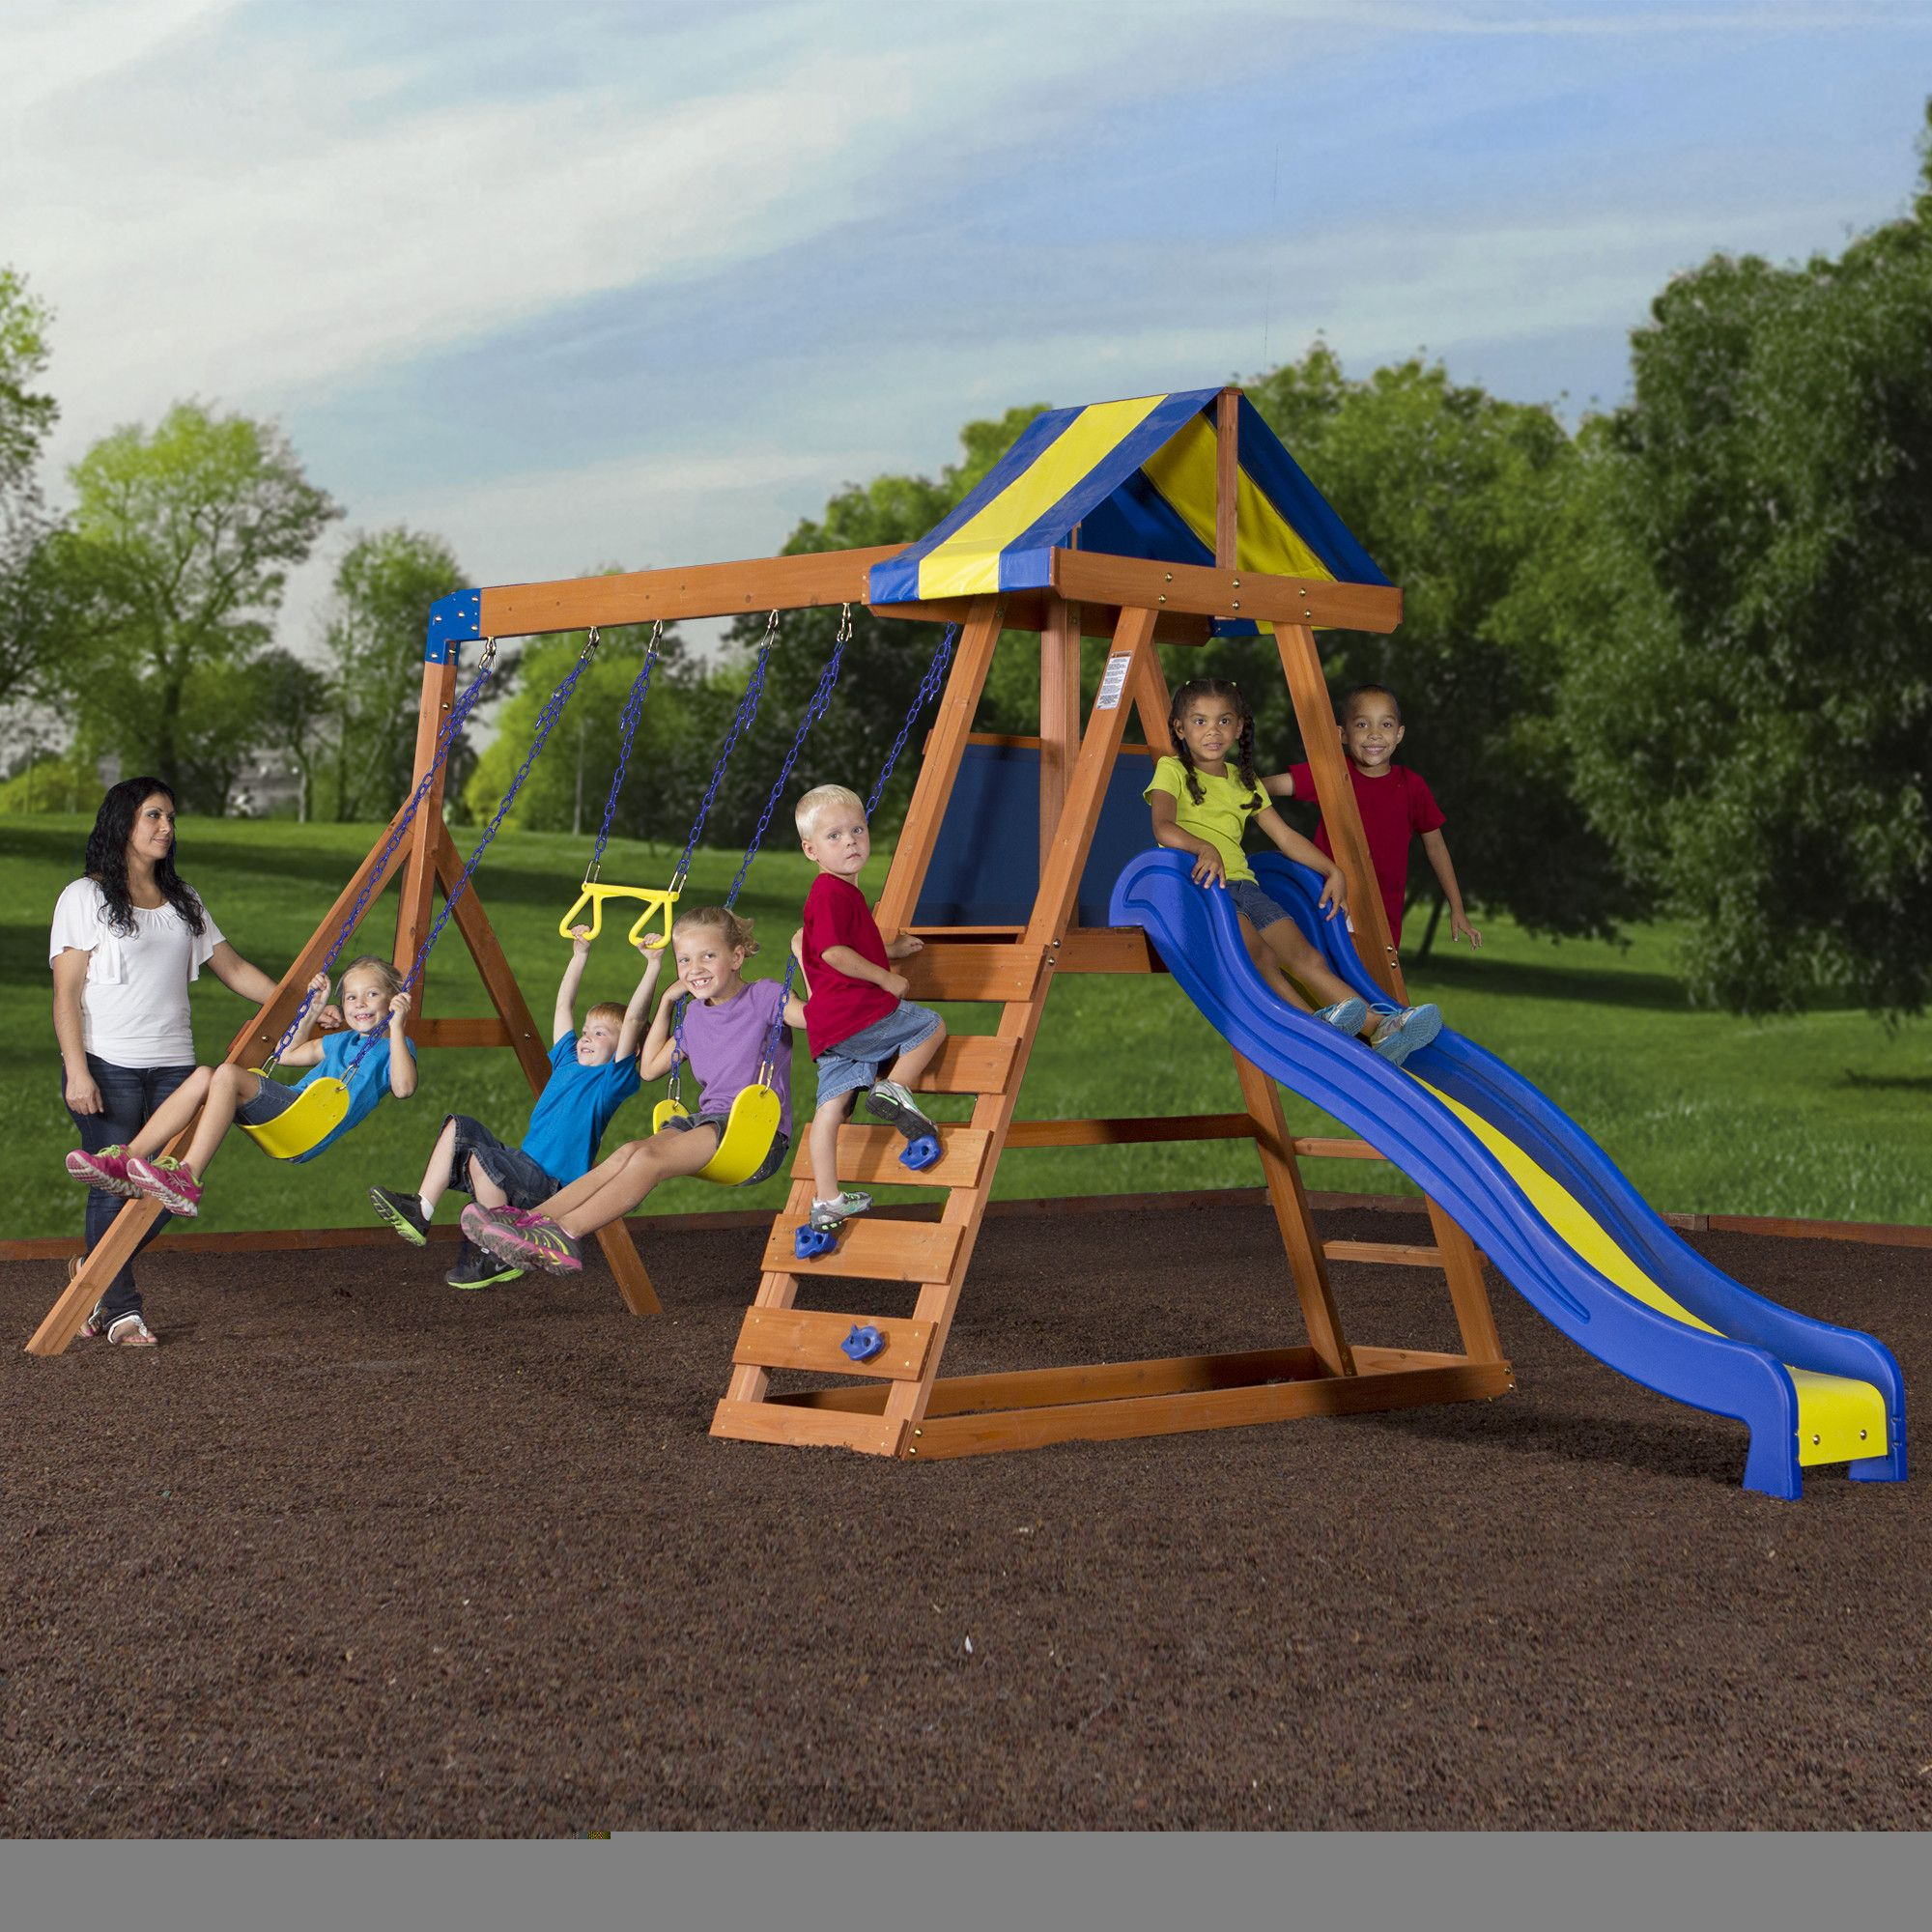 Swing sets wayfair metal amp wooden swingsets for kids - You Ll Love The Dayton All Cedar Swing Set At Wayfair Great Deals On All Baby Kids Products With Free Shipping On Most Stuff Even The Big Stuff